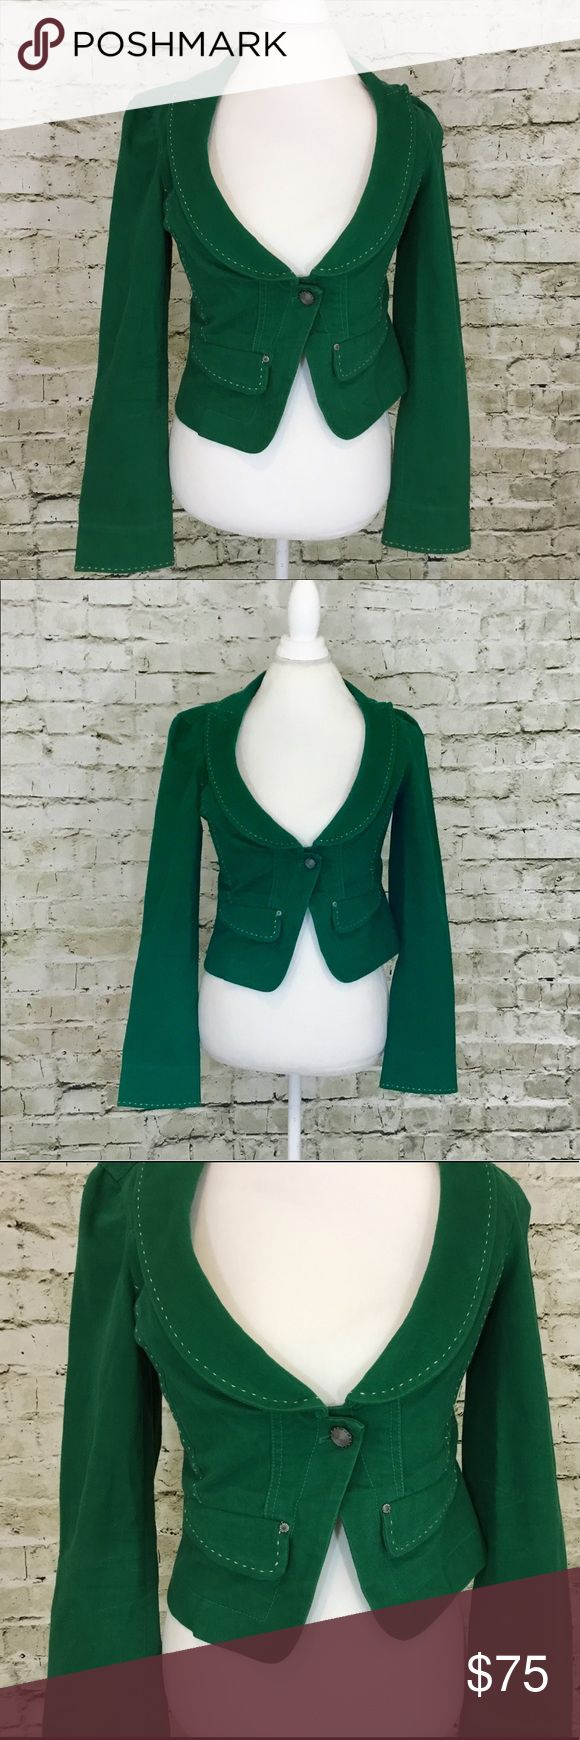 💕Armani Exchange Green Denim Blazer Fitted green denim blazer by Armani Exchange with fabulous detailing throughout. 99% Cotton, 1% Spandex. No stains, tears... it's in great condition. Armani Exchange Jackets & Coats Jean Jackets